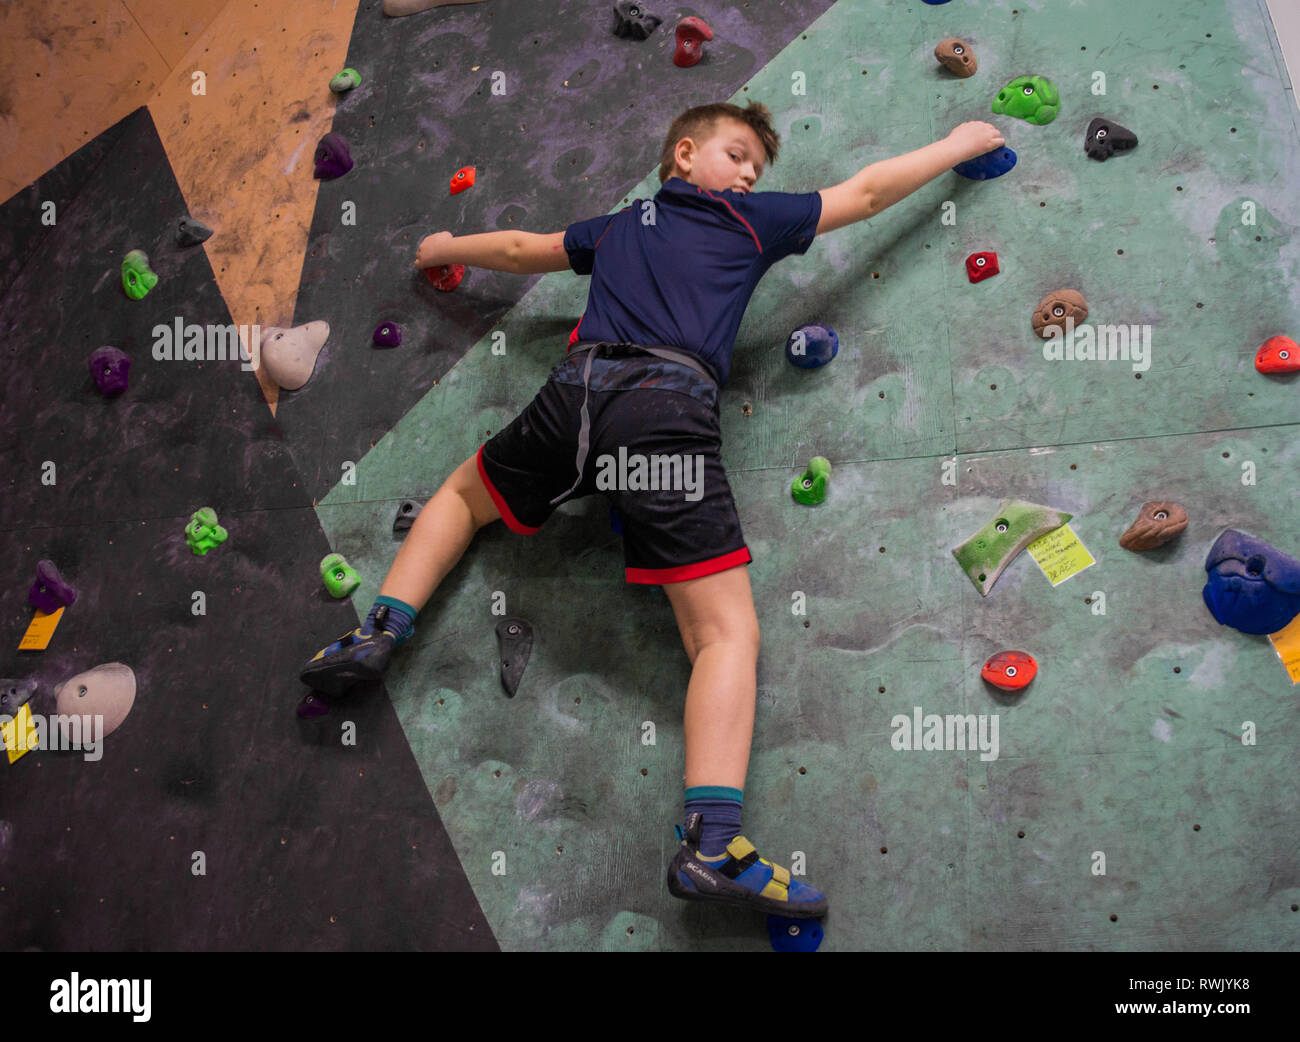 Climbing on rock wall - Stock Image